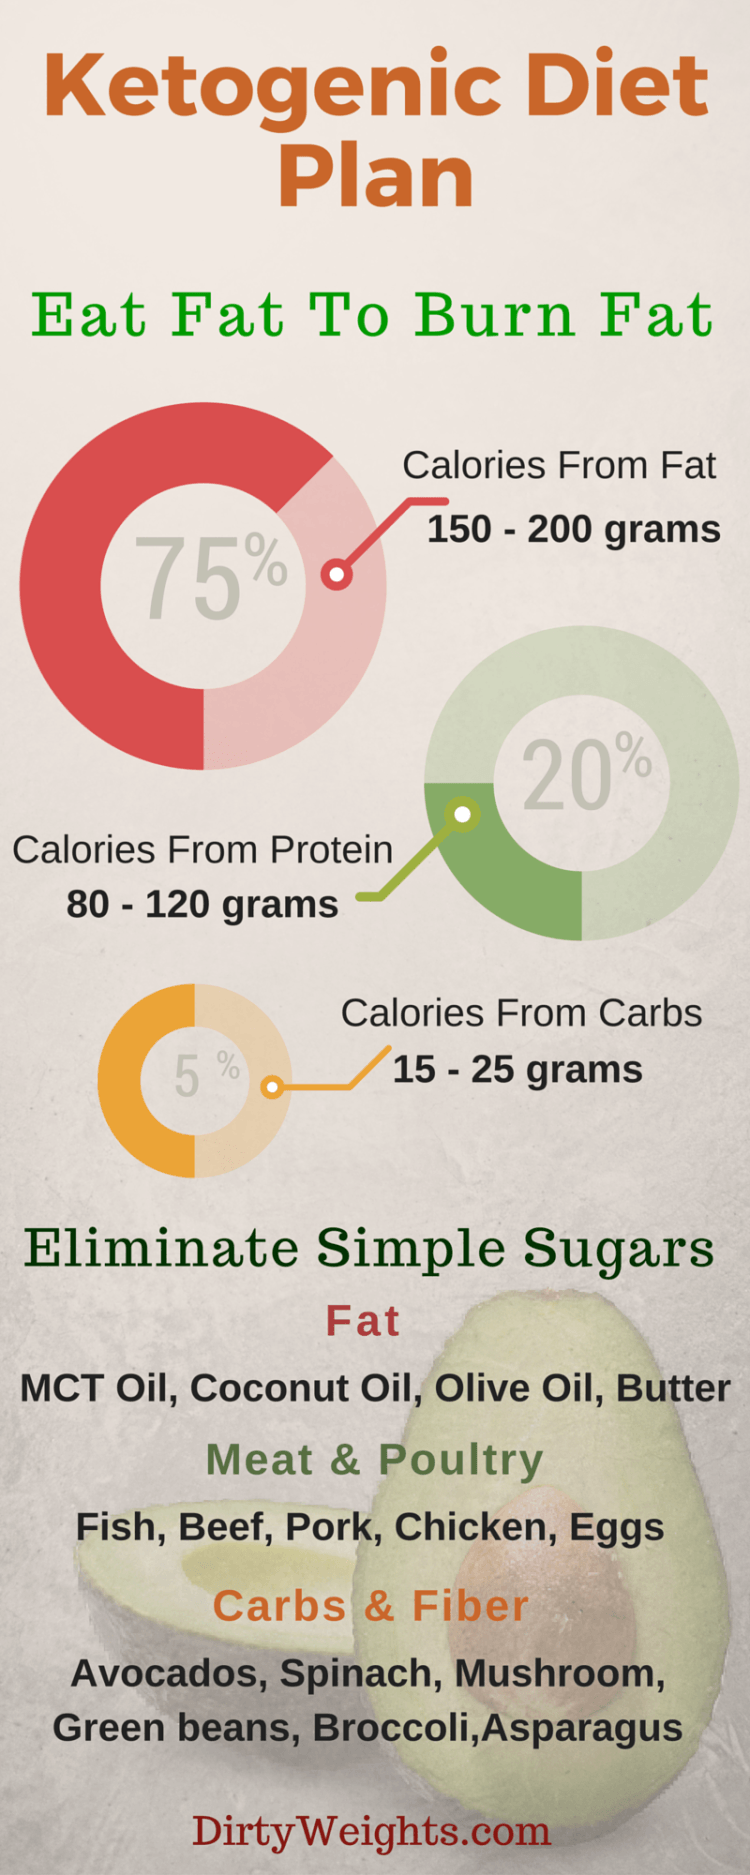 Cool Ketogenic Diet Infographic!!